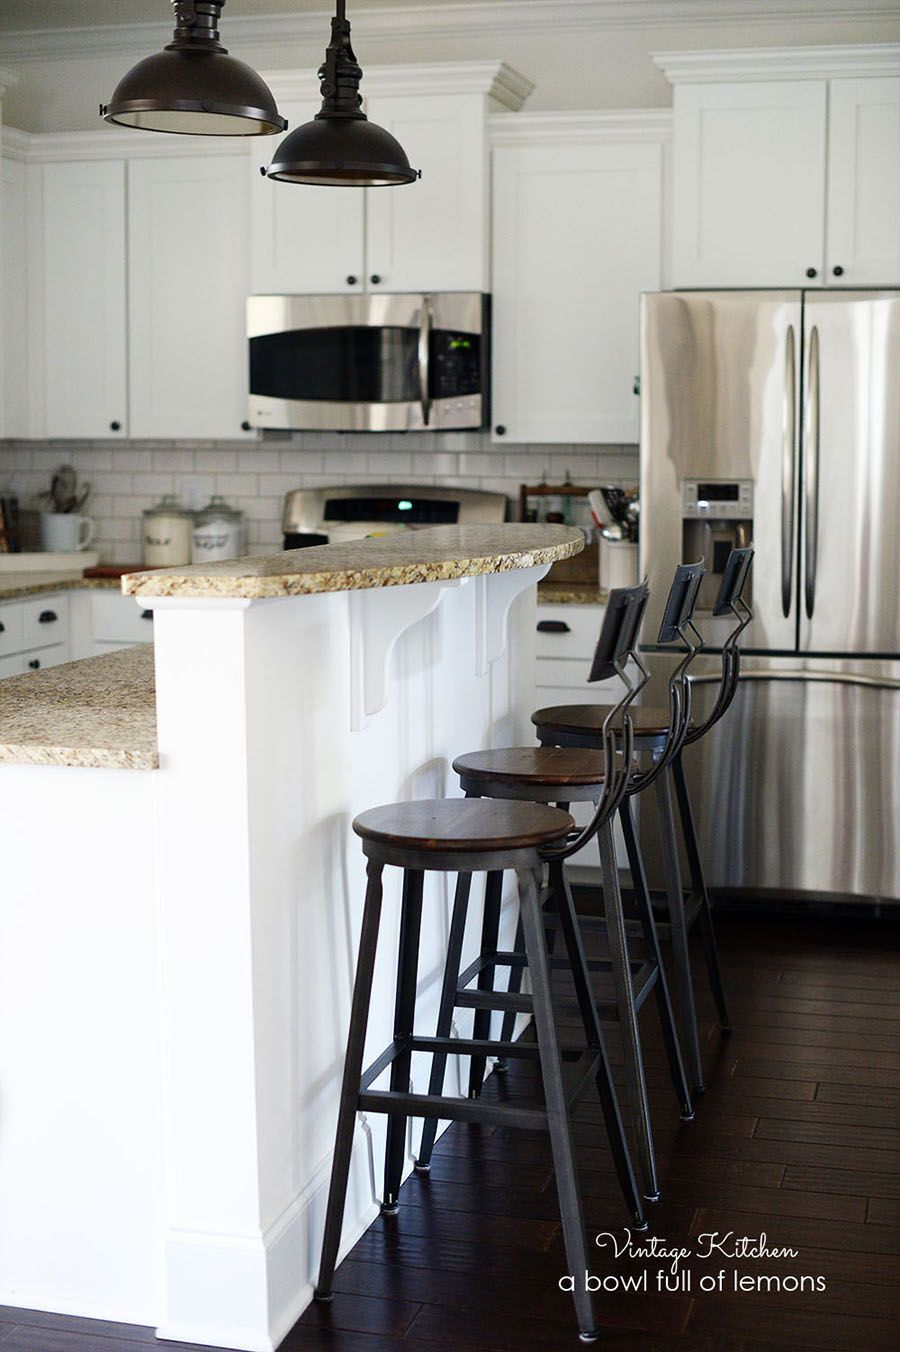 How To Add Vintage Style To A Builders Grade Kitchen By A